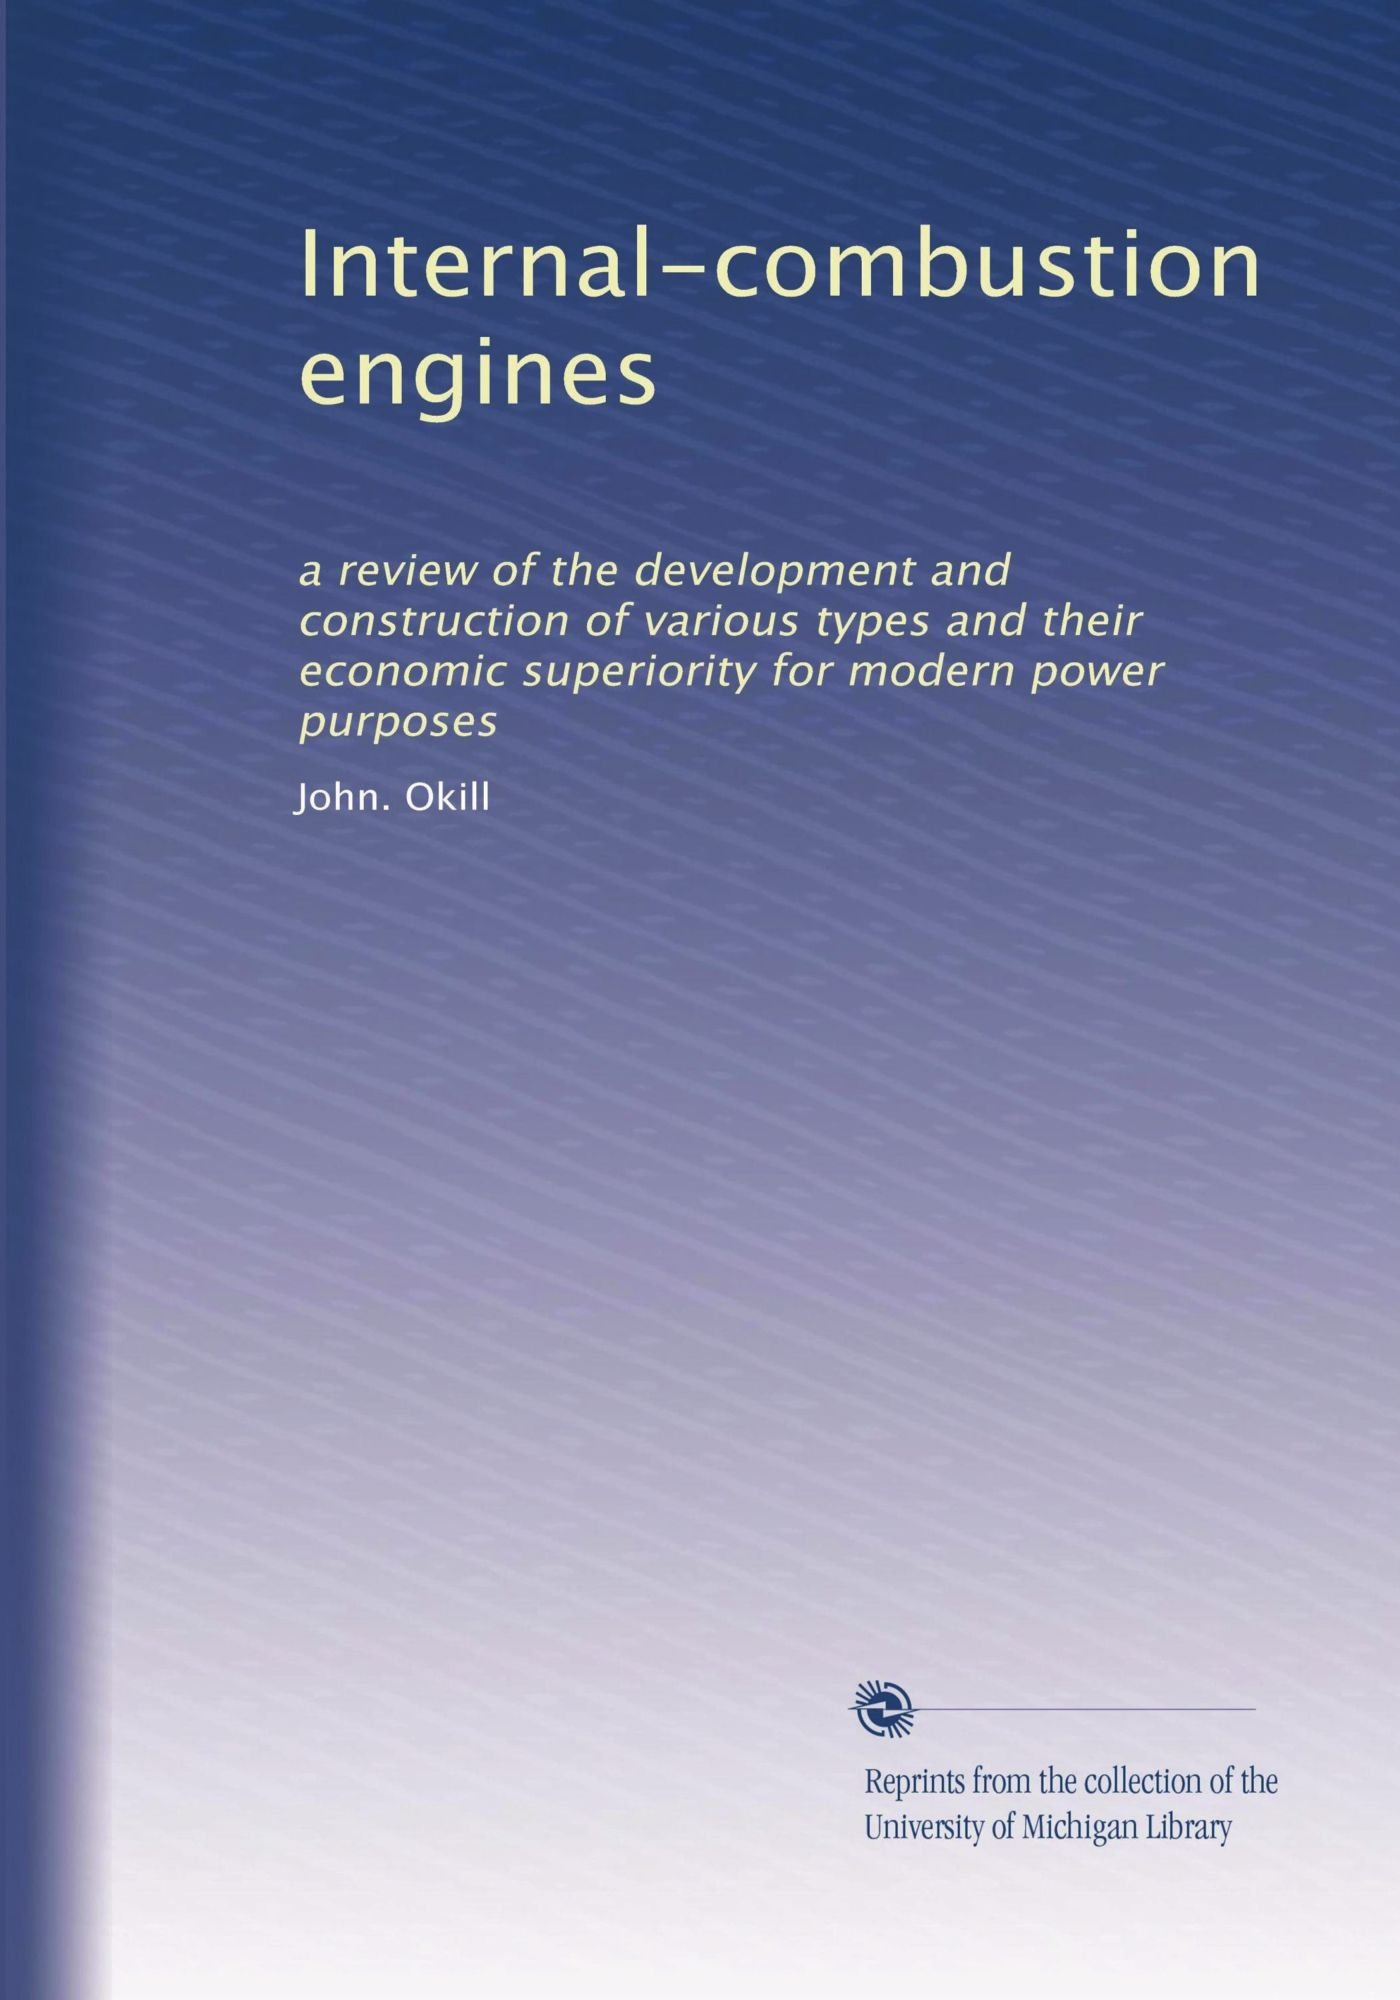 Internal-combustion engines: a review of the development and construction of various types and their economic superiority for modern power purposes PDF